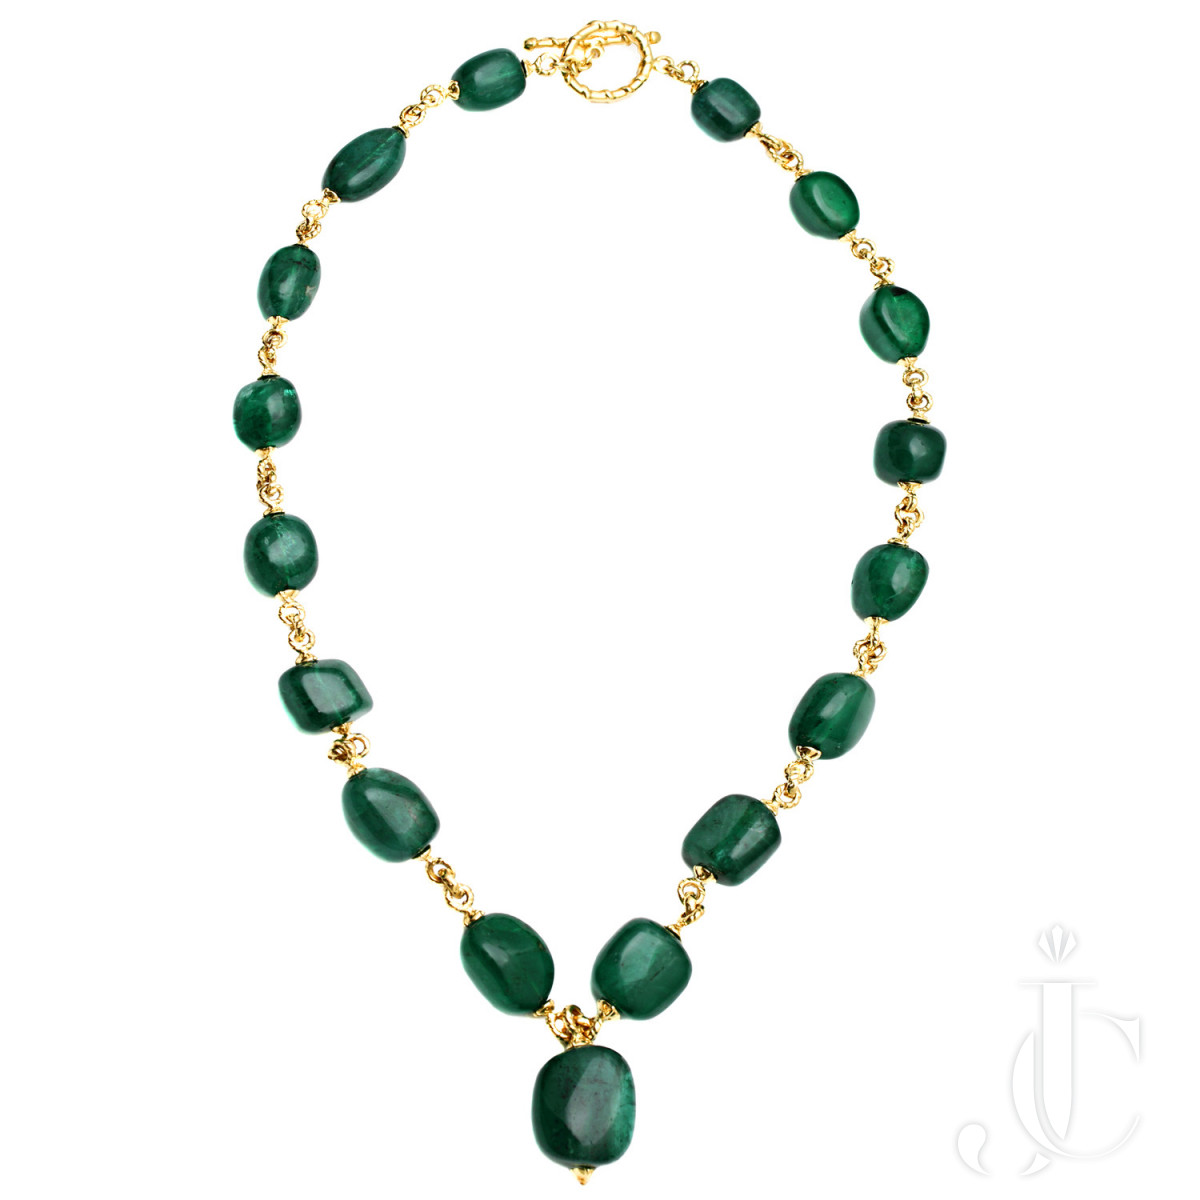 Baroque Emerald and Gold Link Necklace